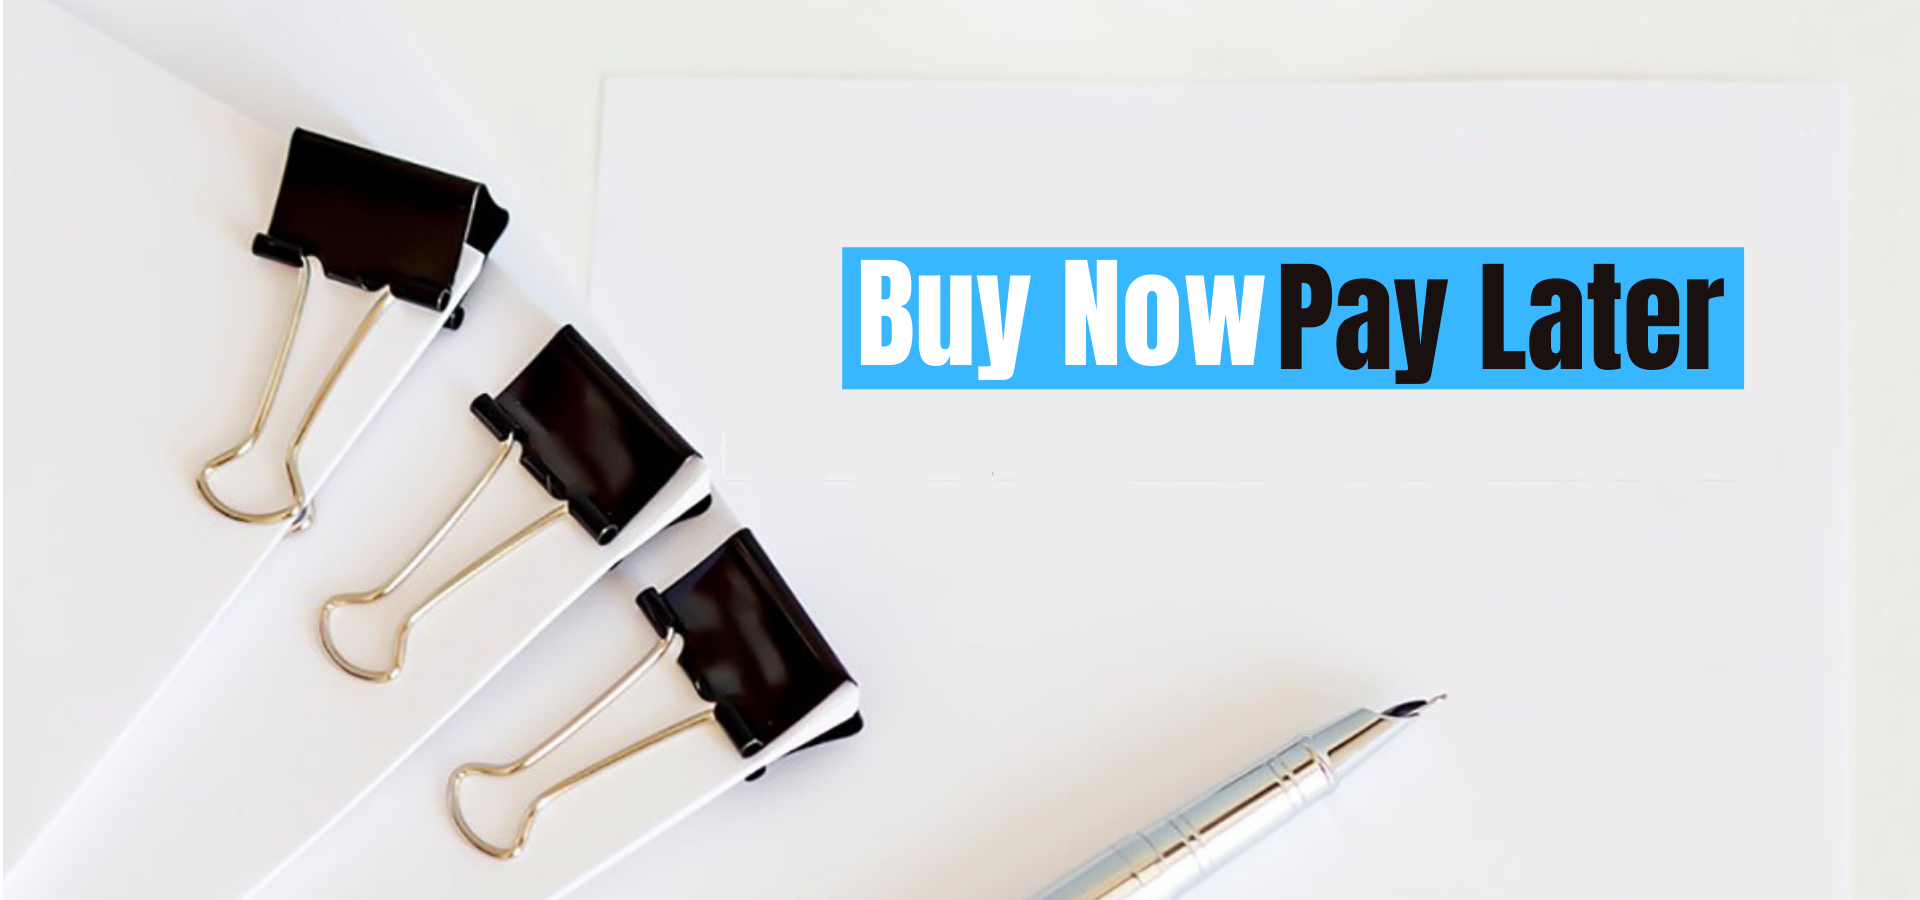 Buy Now Pay Later – No Credit Check? The Better Layaway Plan